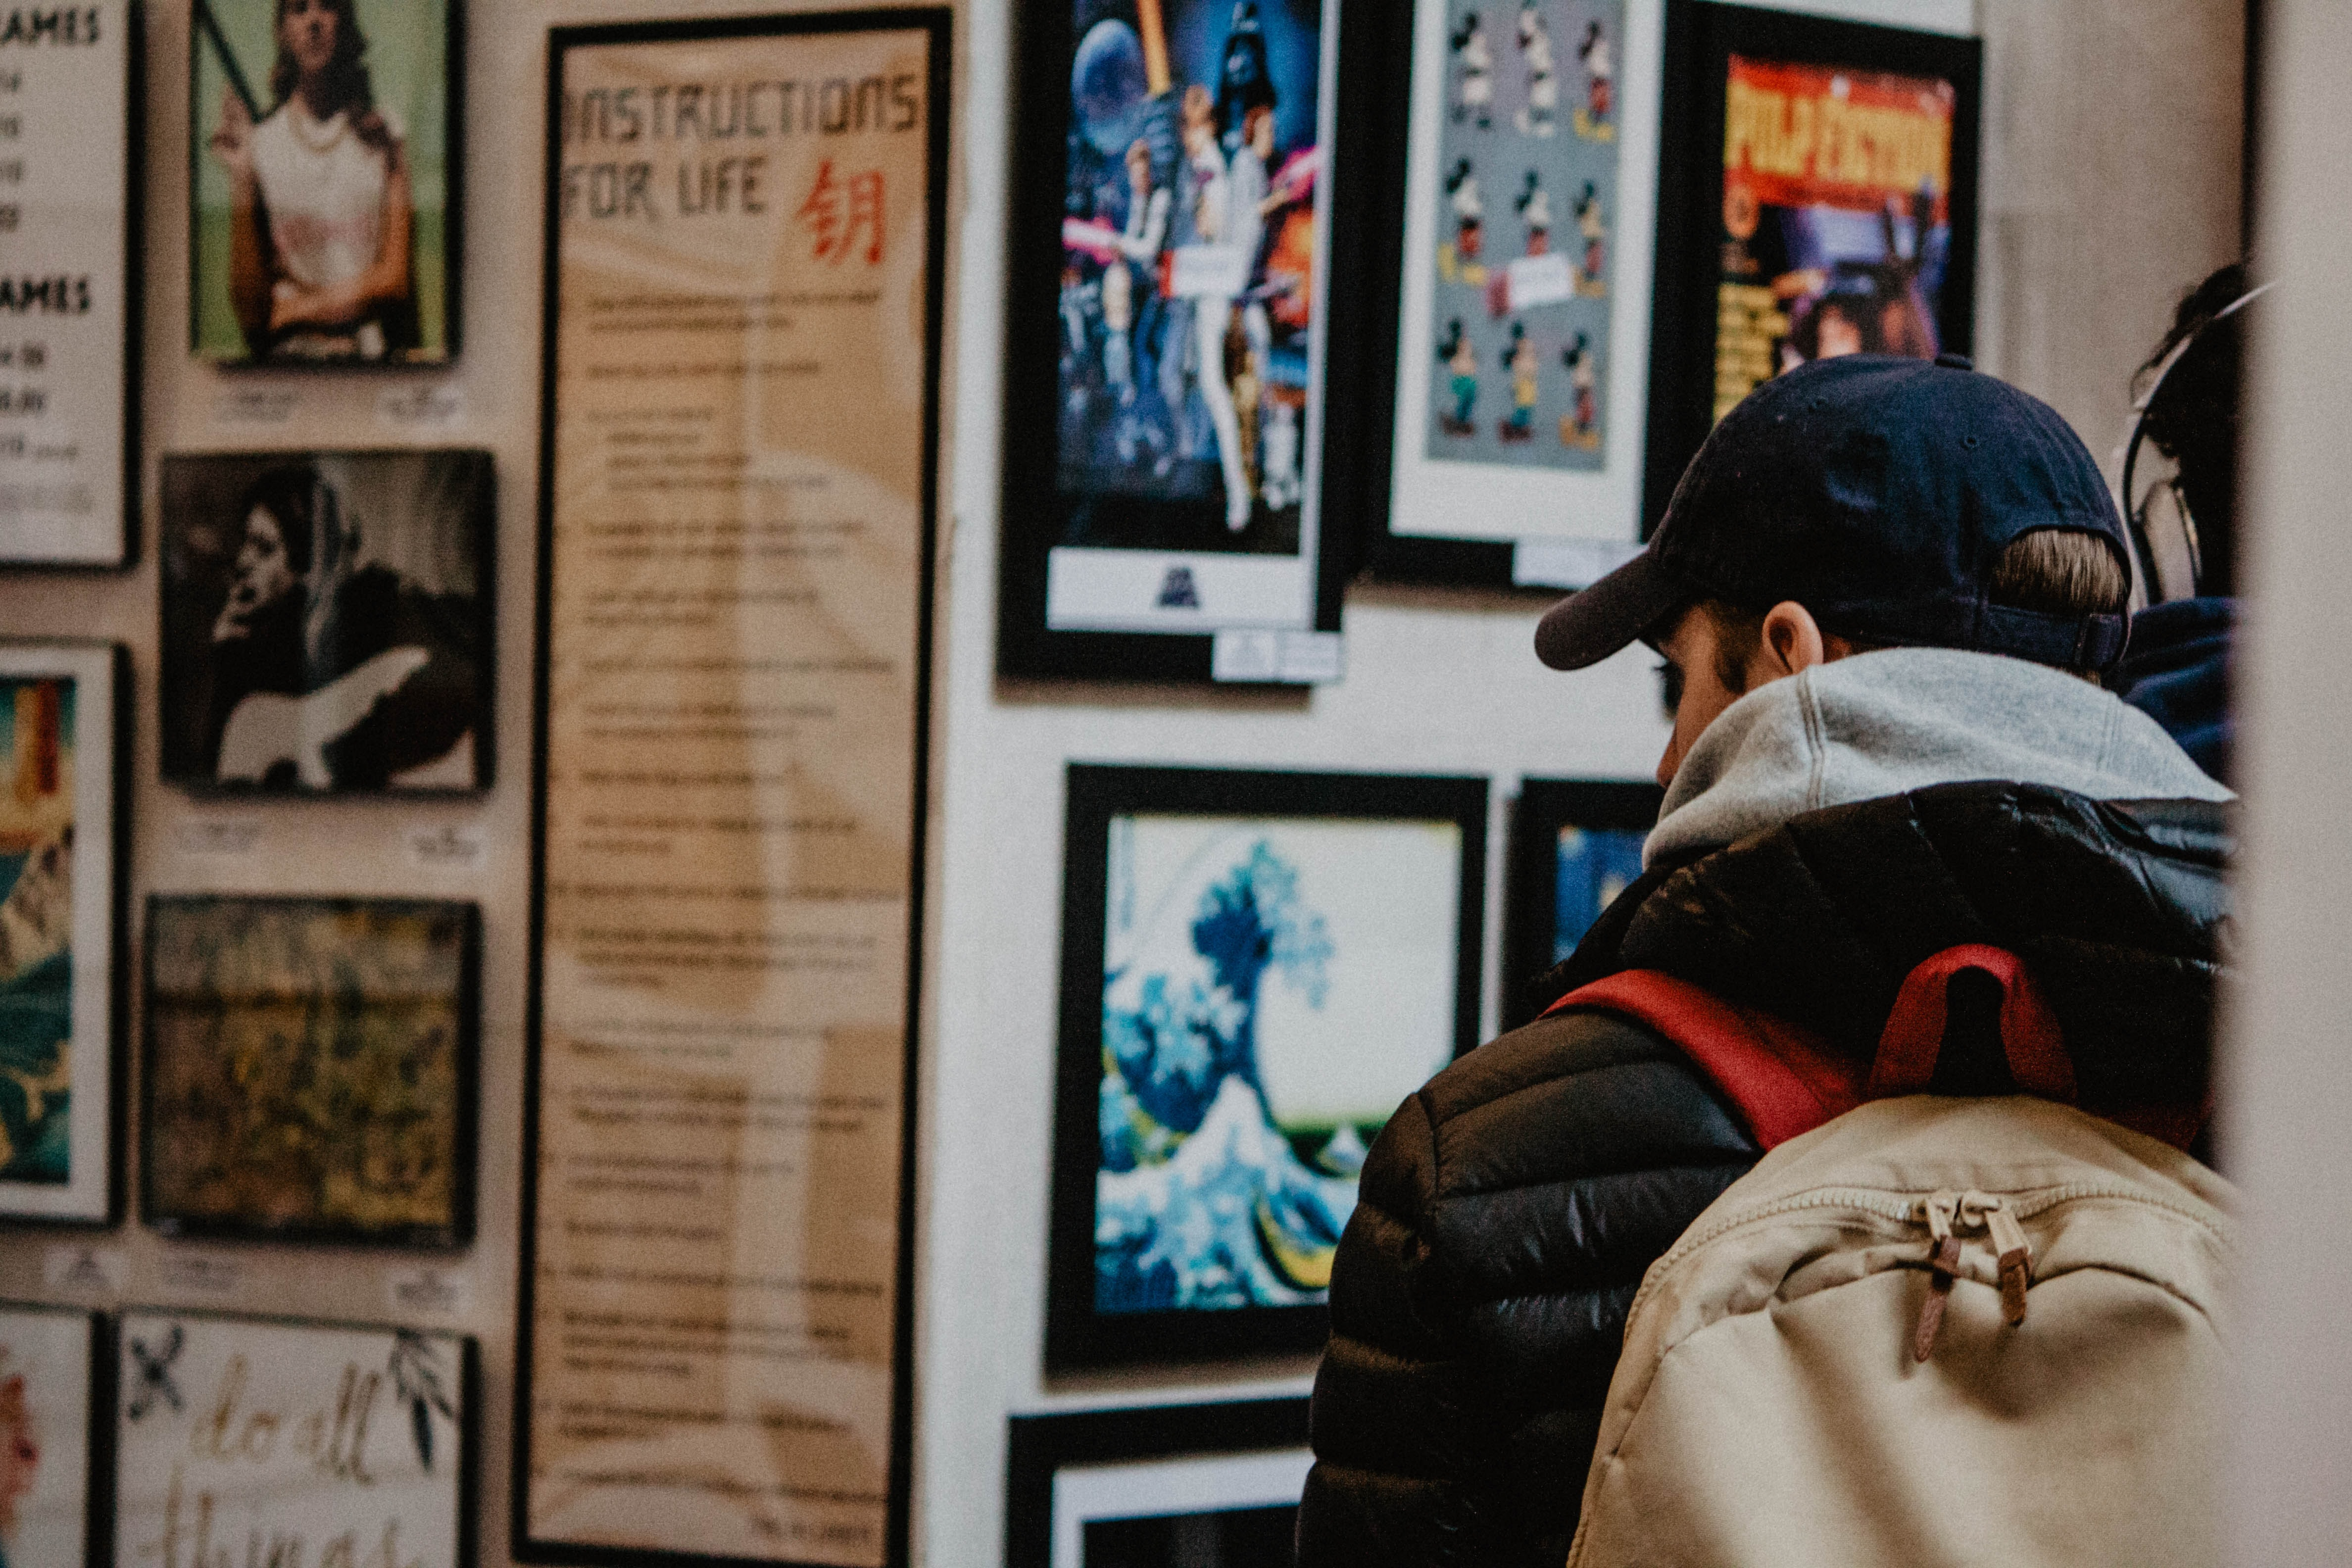 person wearing black bubble jacket watching wall posters